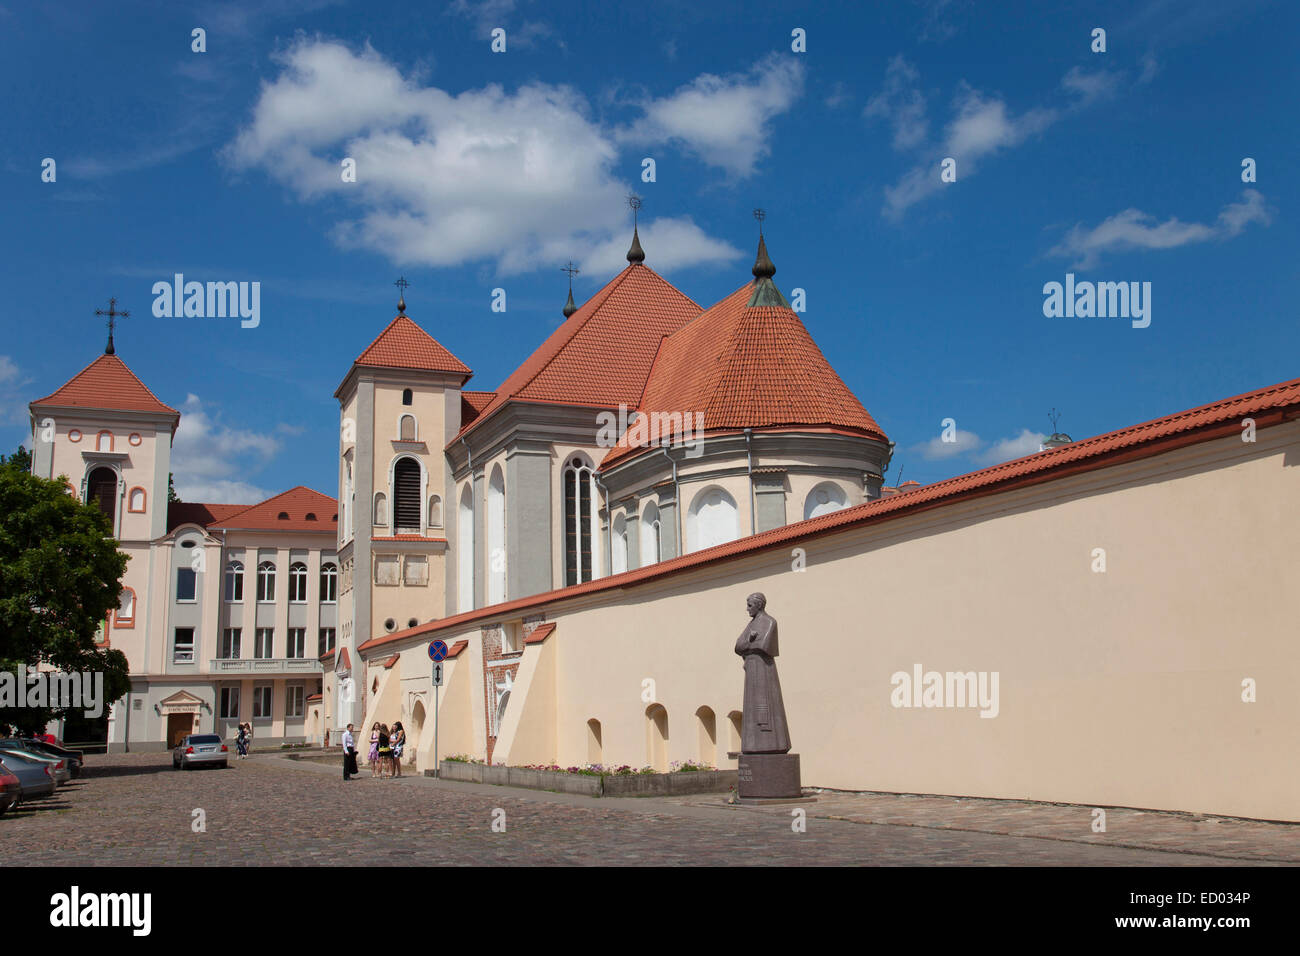 Lithuania, Kaunas, Priest seminary, - Stock Image